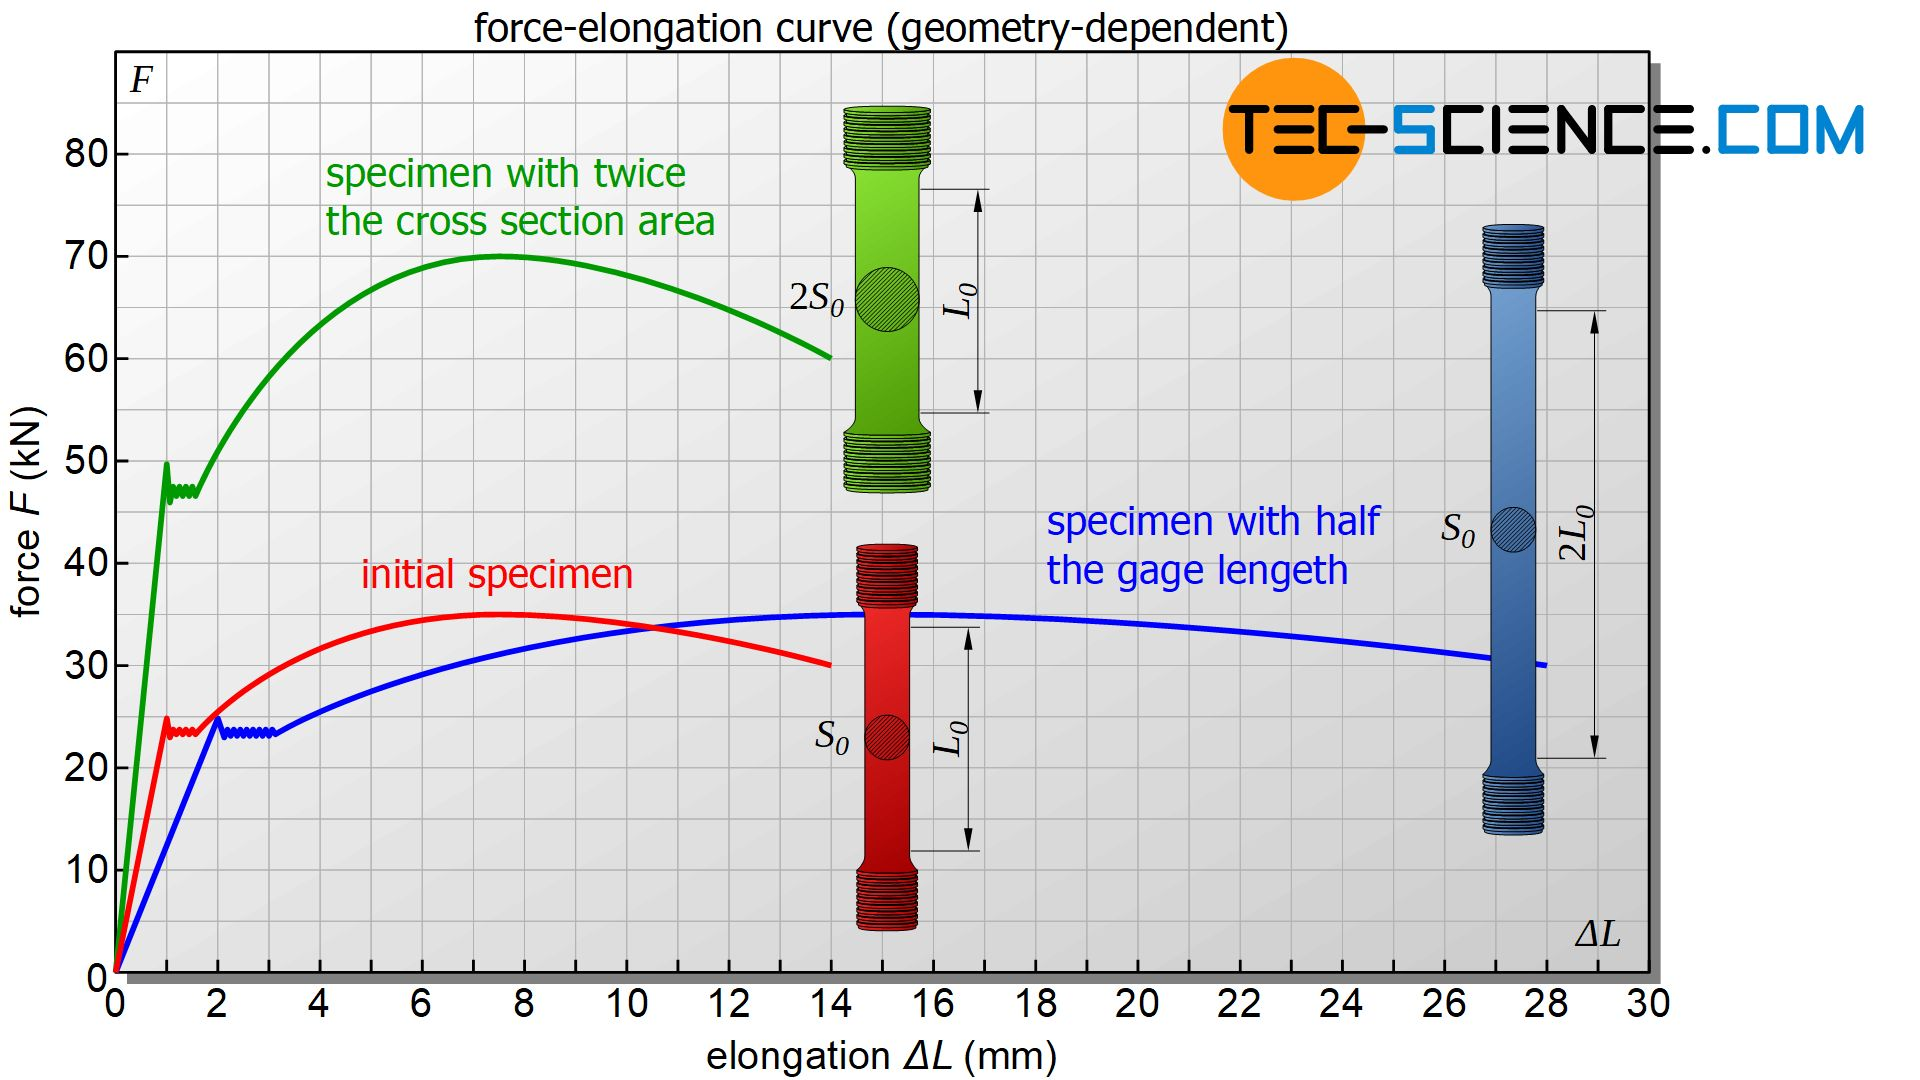 Force-elongation curve